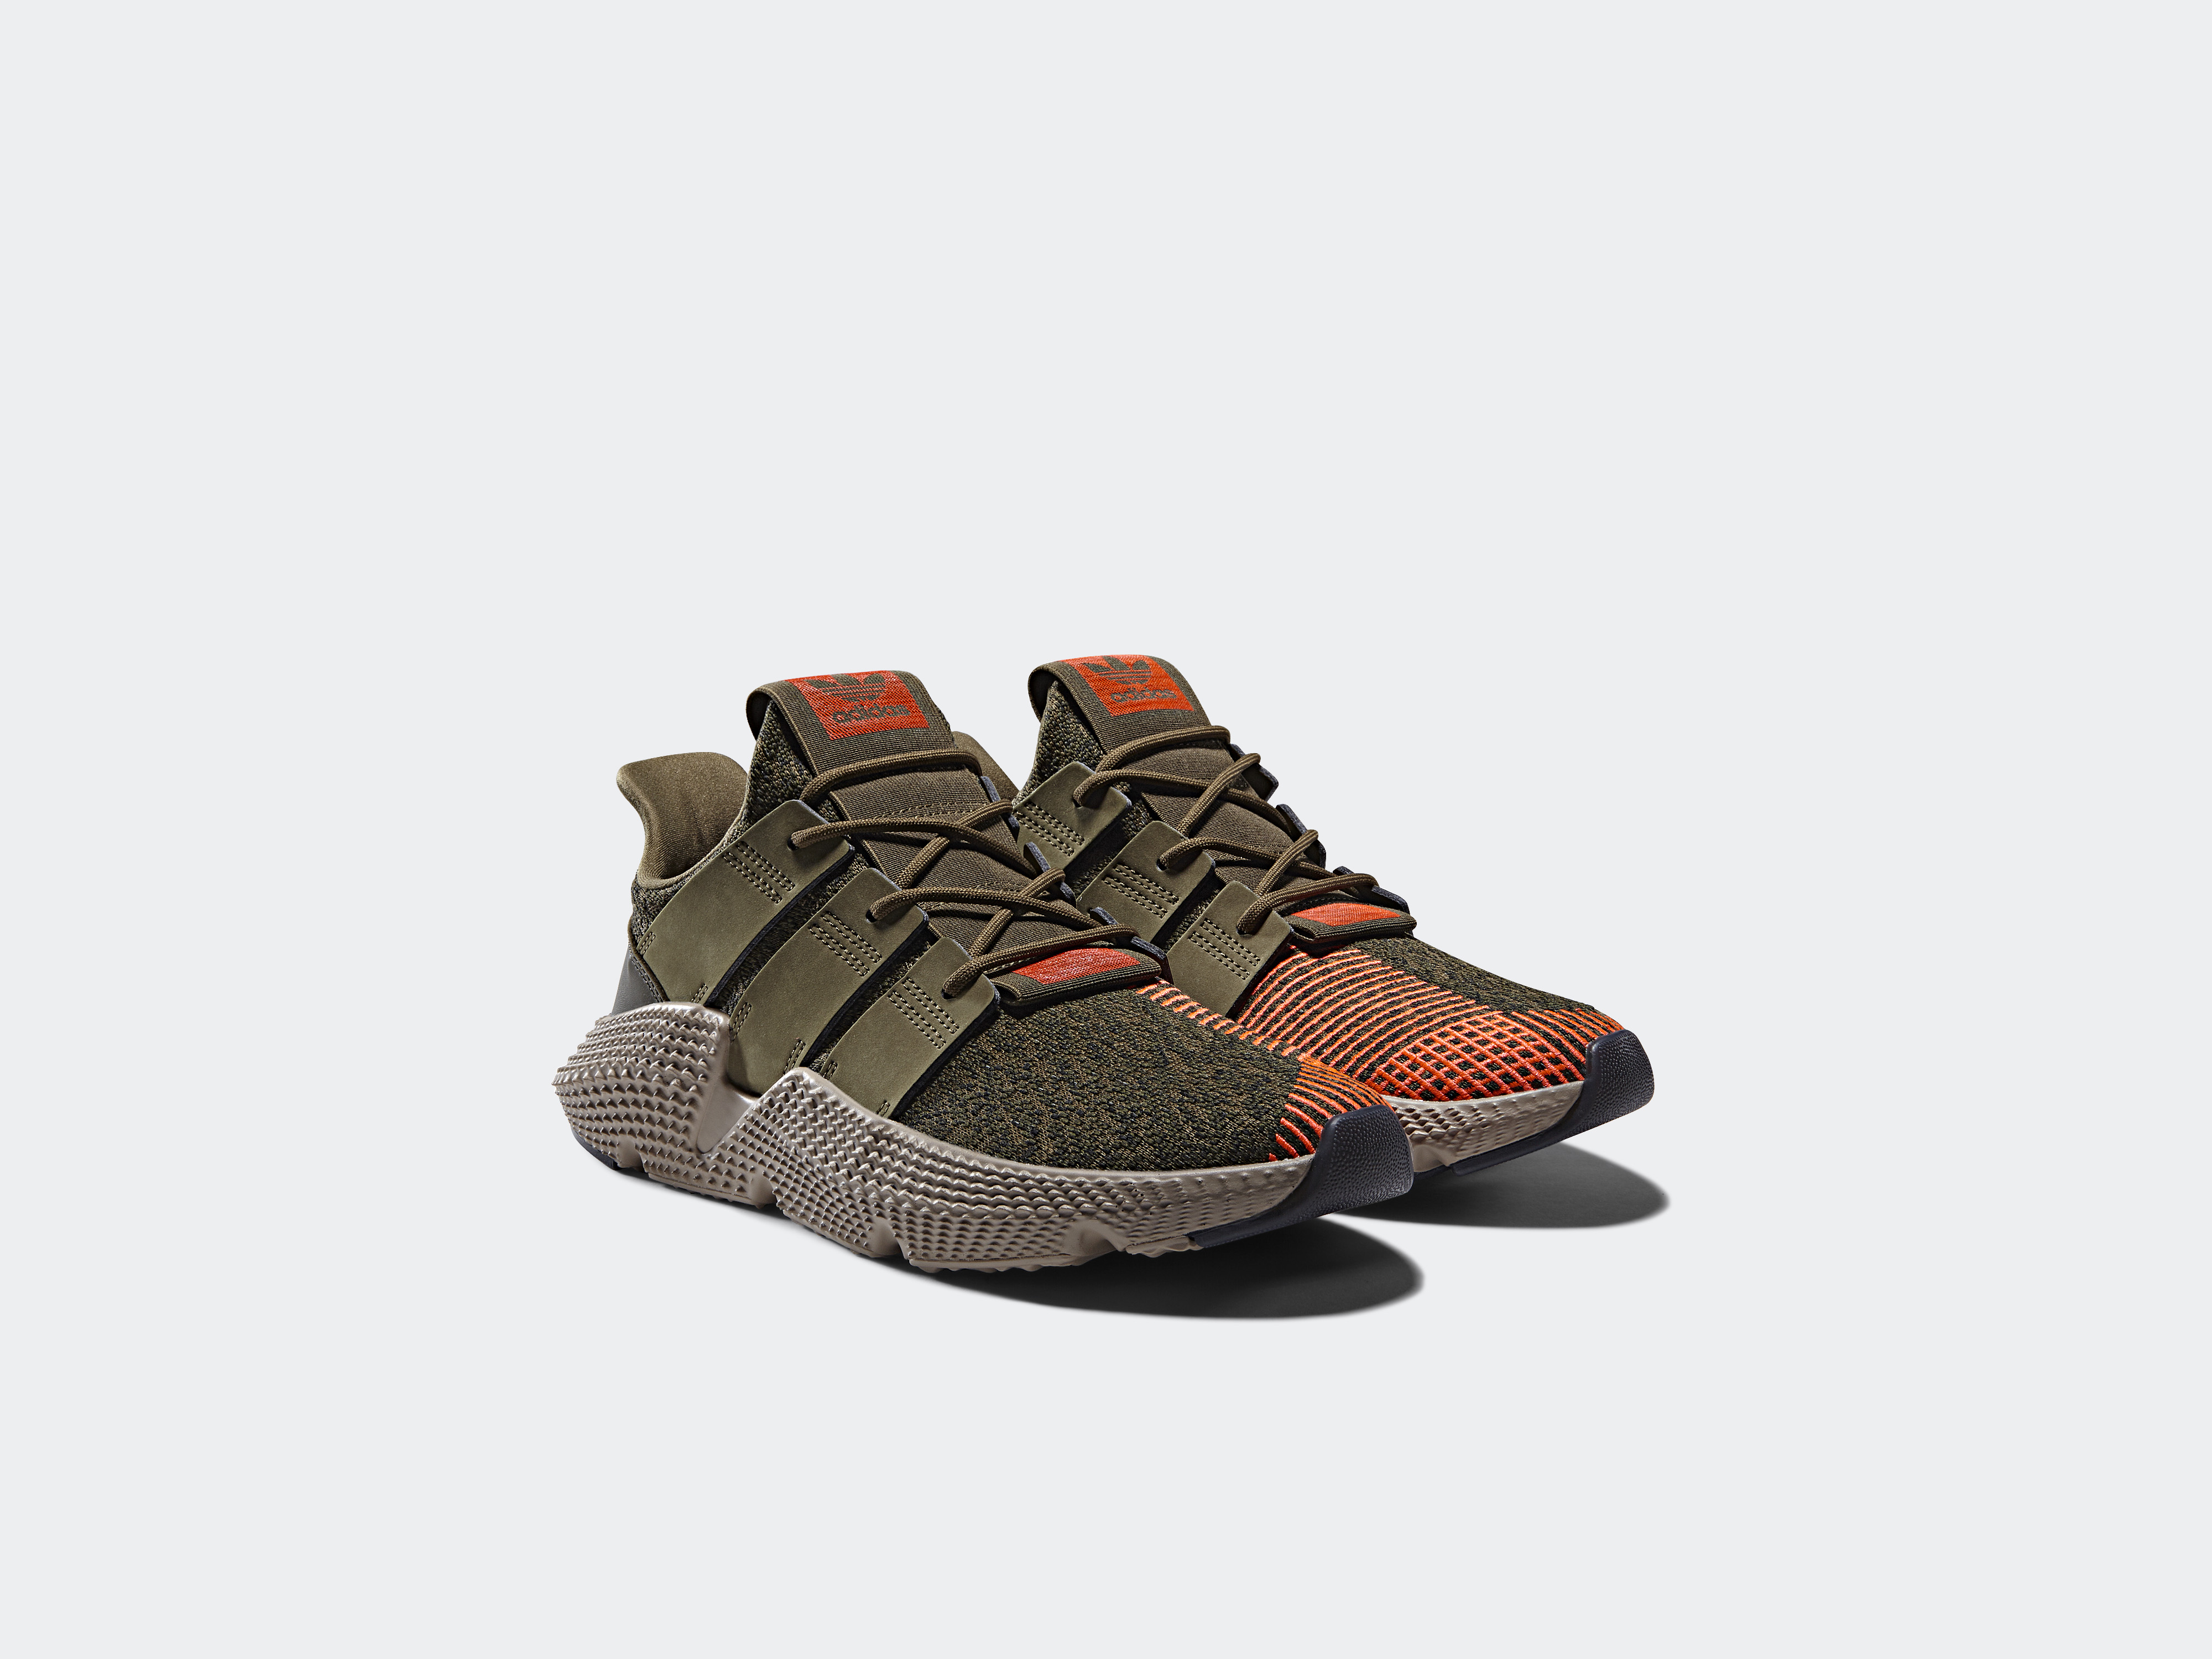 online retailer 27d87 d96ff The Adidas Prophere II Comes To Conquer The Streets - MASSES